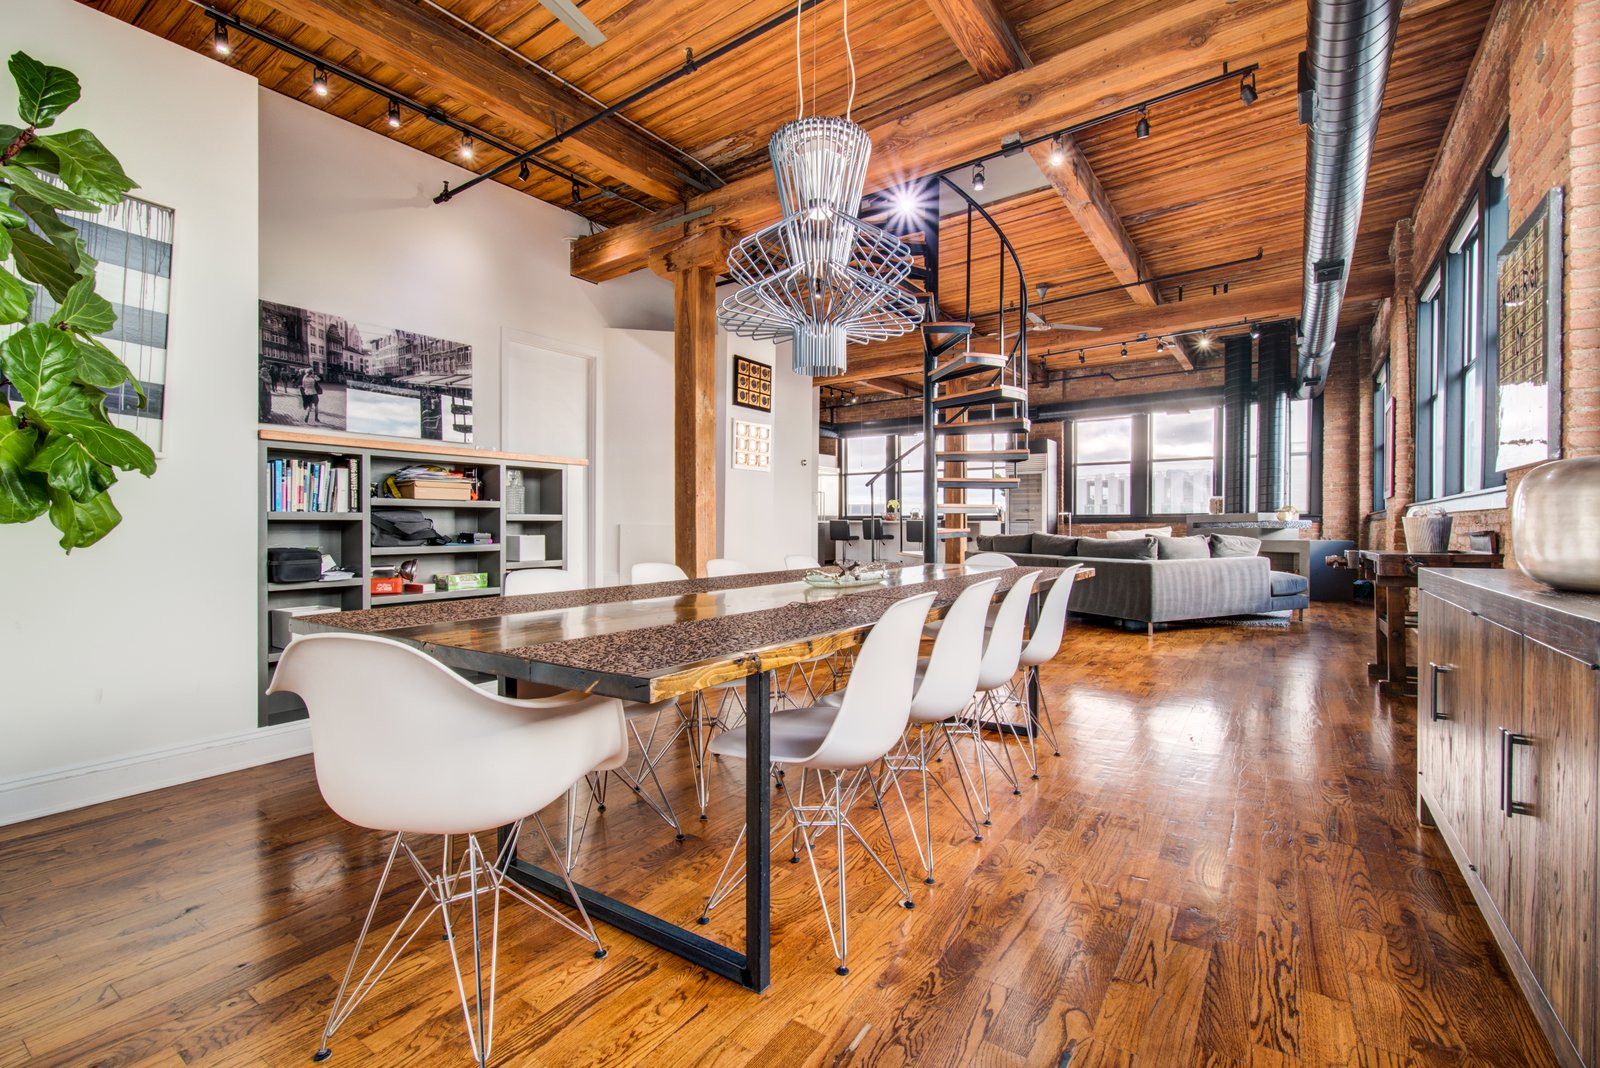 Dining Room, Chair, Ceiling Lighting, Shelves, Table, Medium Hardwood Floor, and Track Lighting  Penthouse That Starred on NBC's 'Chicago Fire' Asks $1.775M